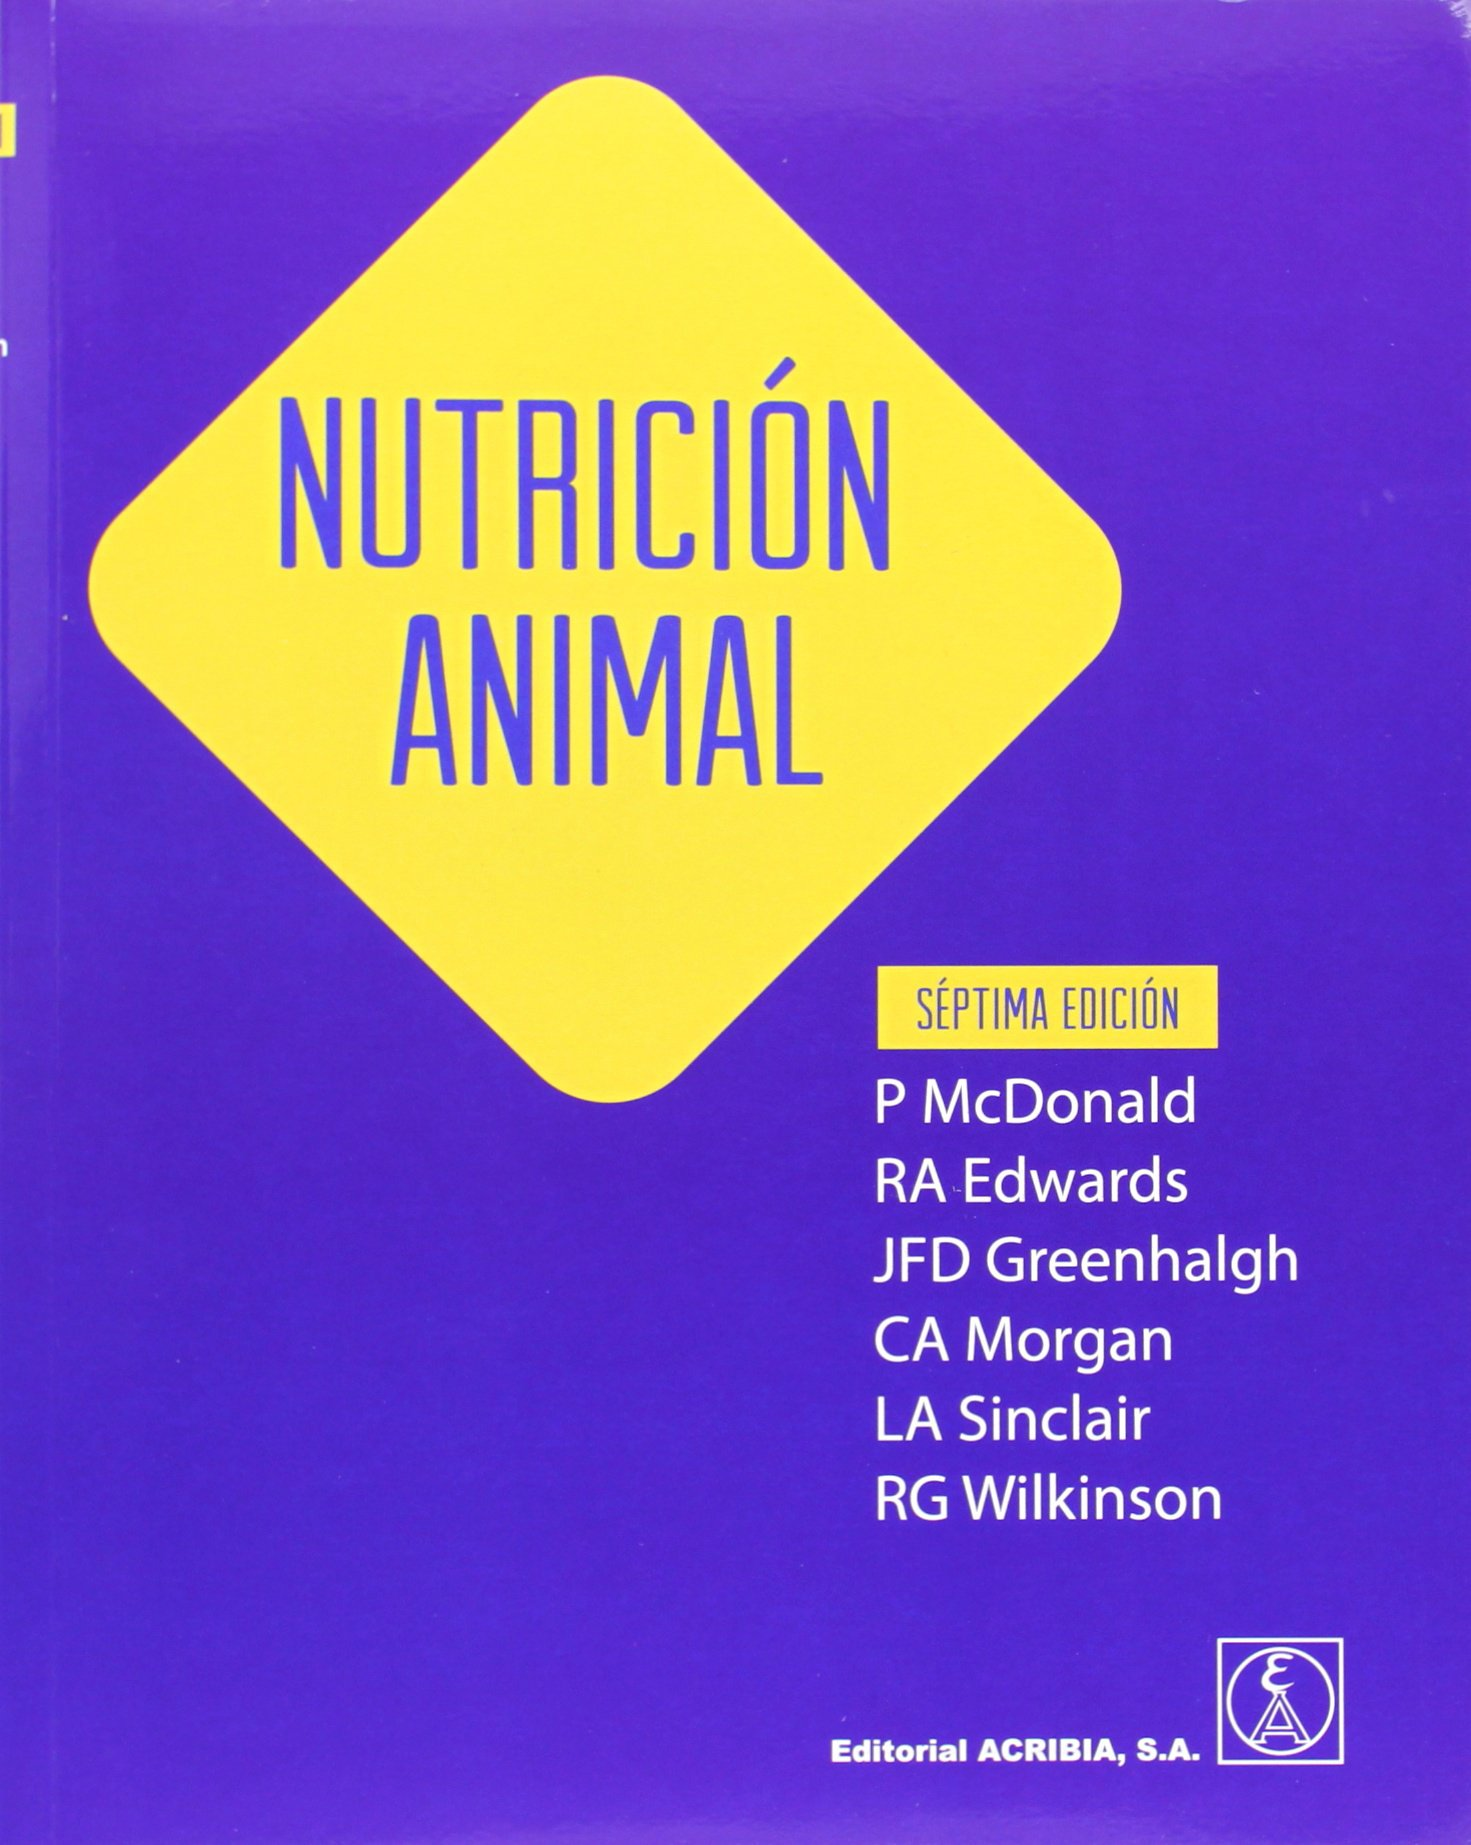 Nutrición animal: Amazon.es: Peter McDonald, Rafael Sanz ...